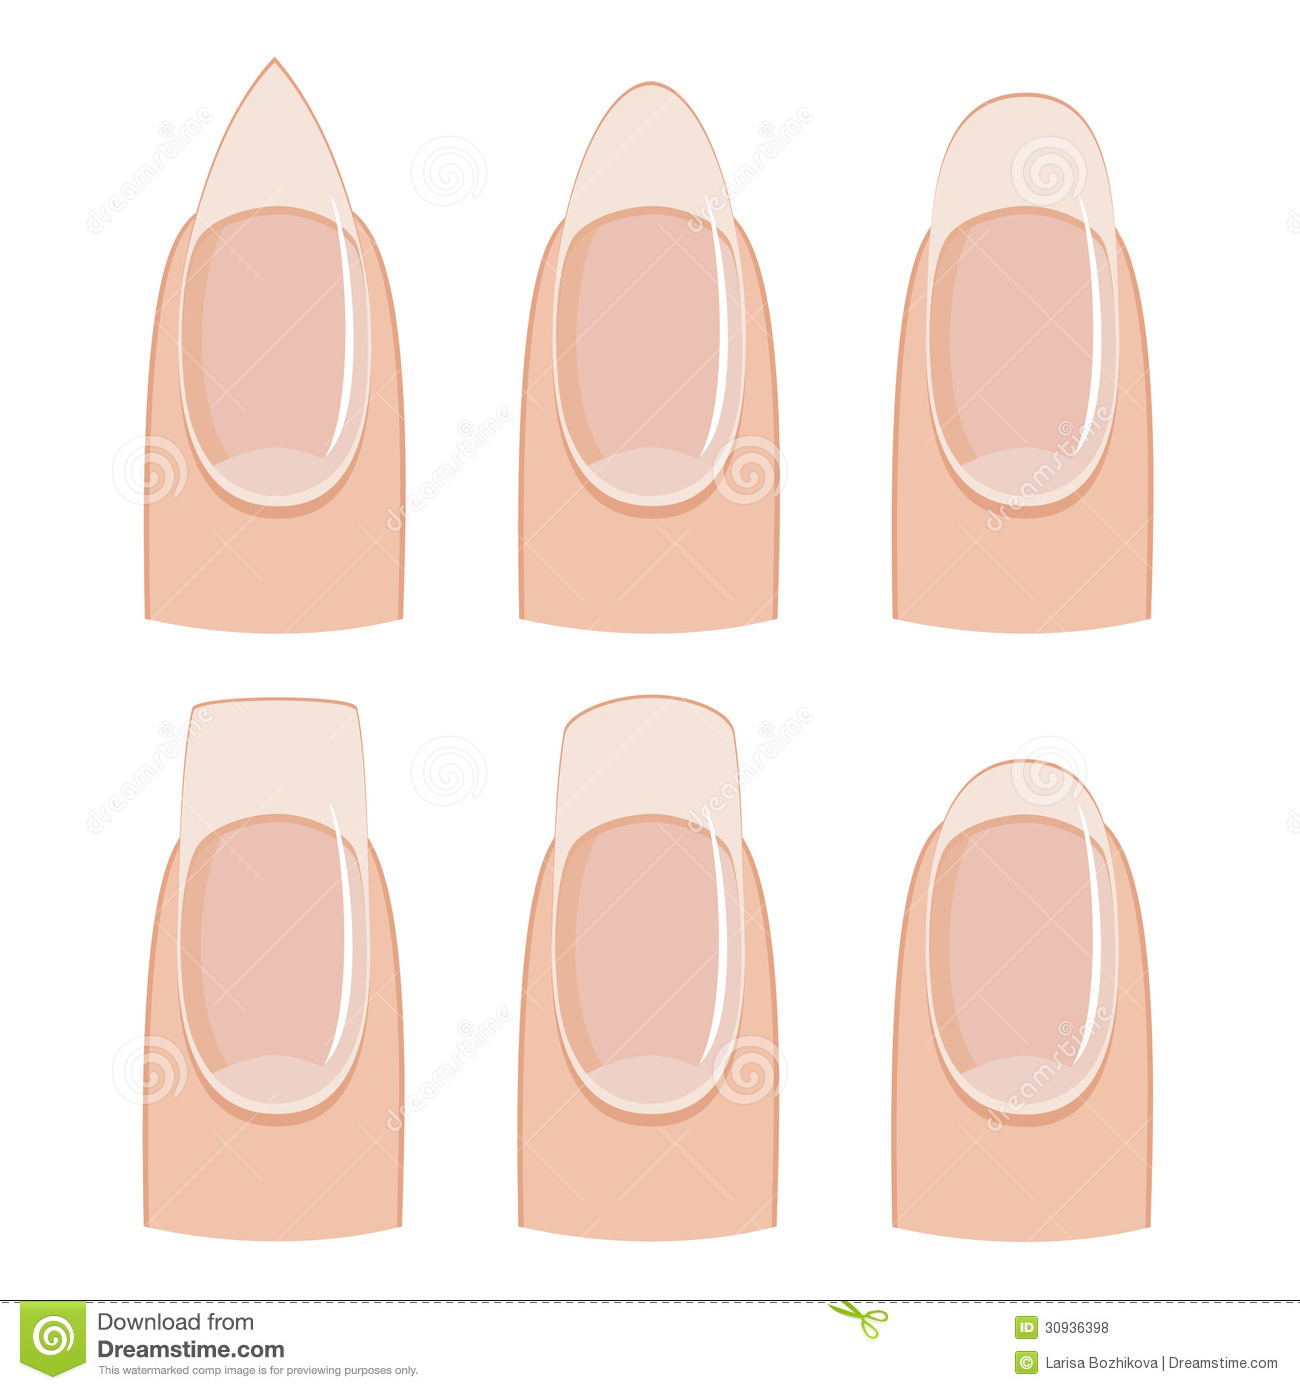 Royalty Free Stock Photos: Nail shapes